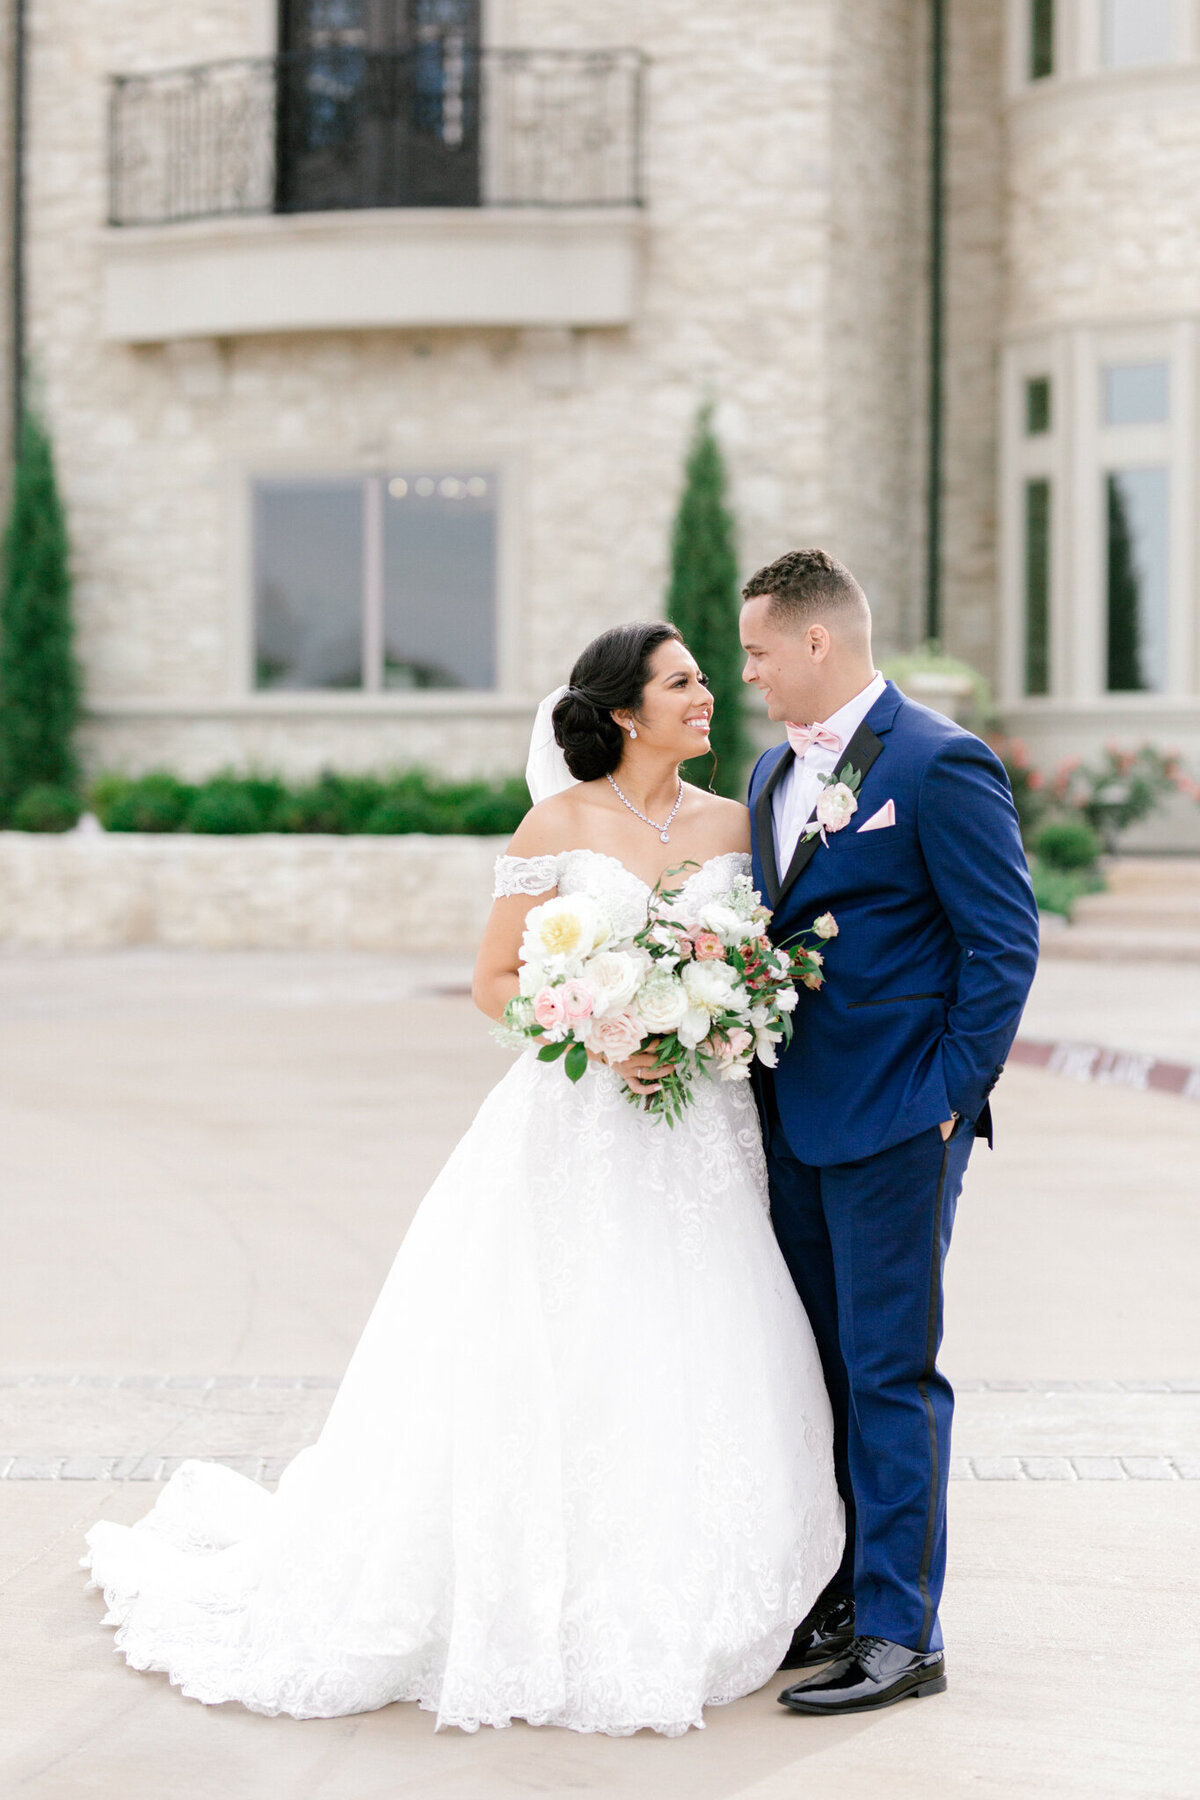 Jasmine & Josh Wedding at Knotting Hill Place | Dallas DFW Wedding Photographer | Sami Kathryn Photography-96